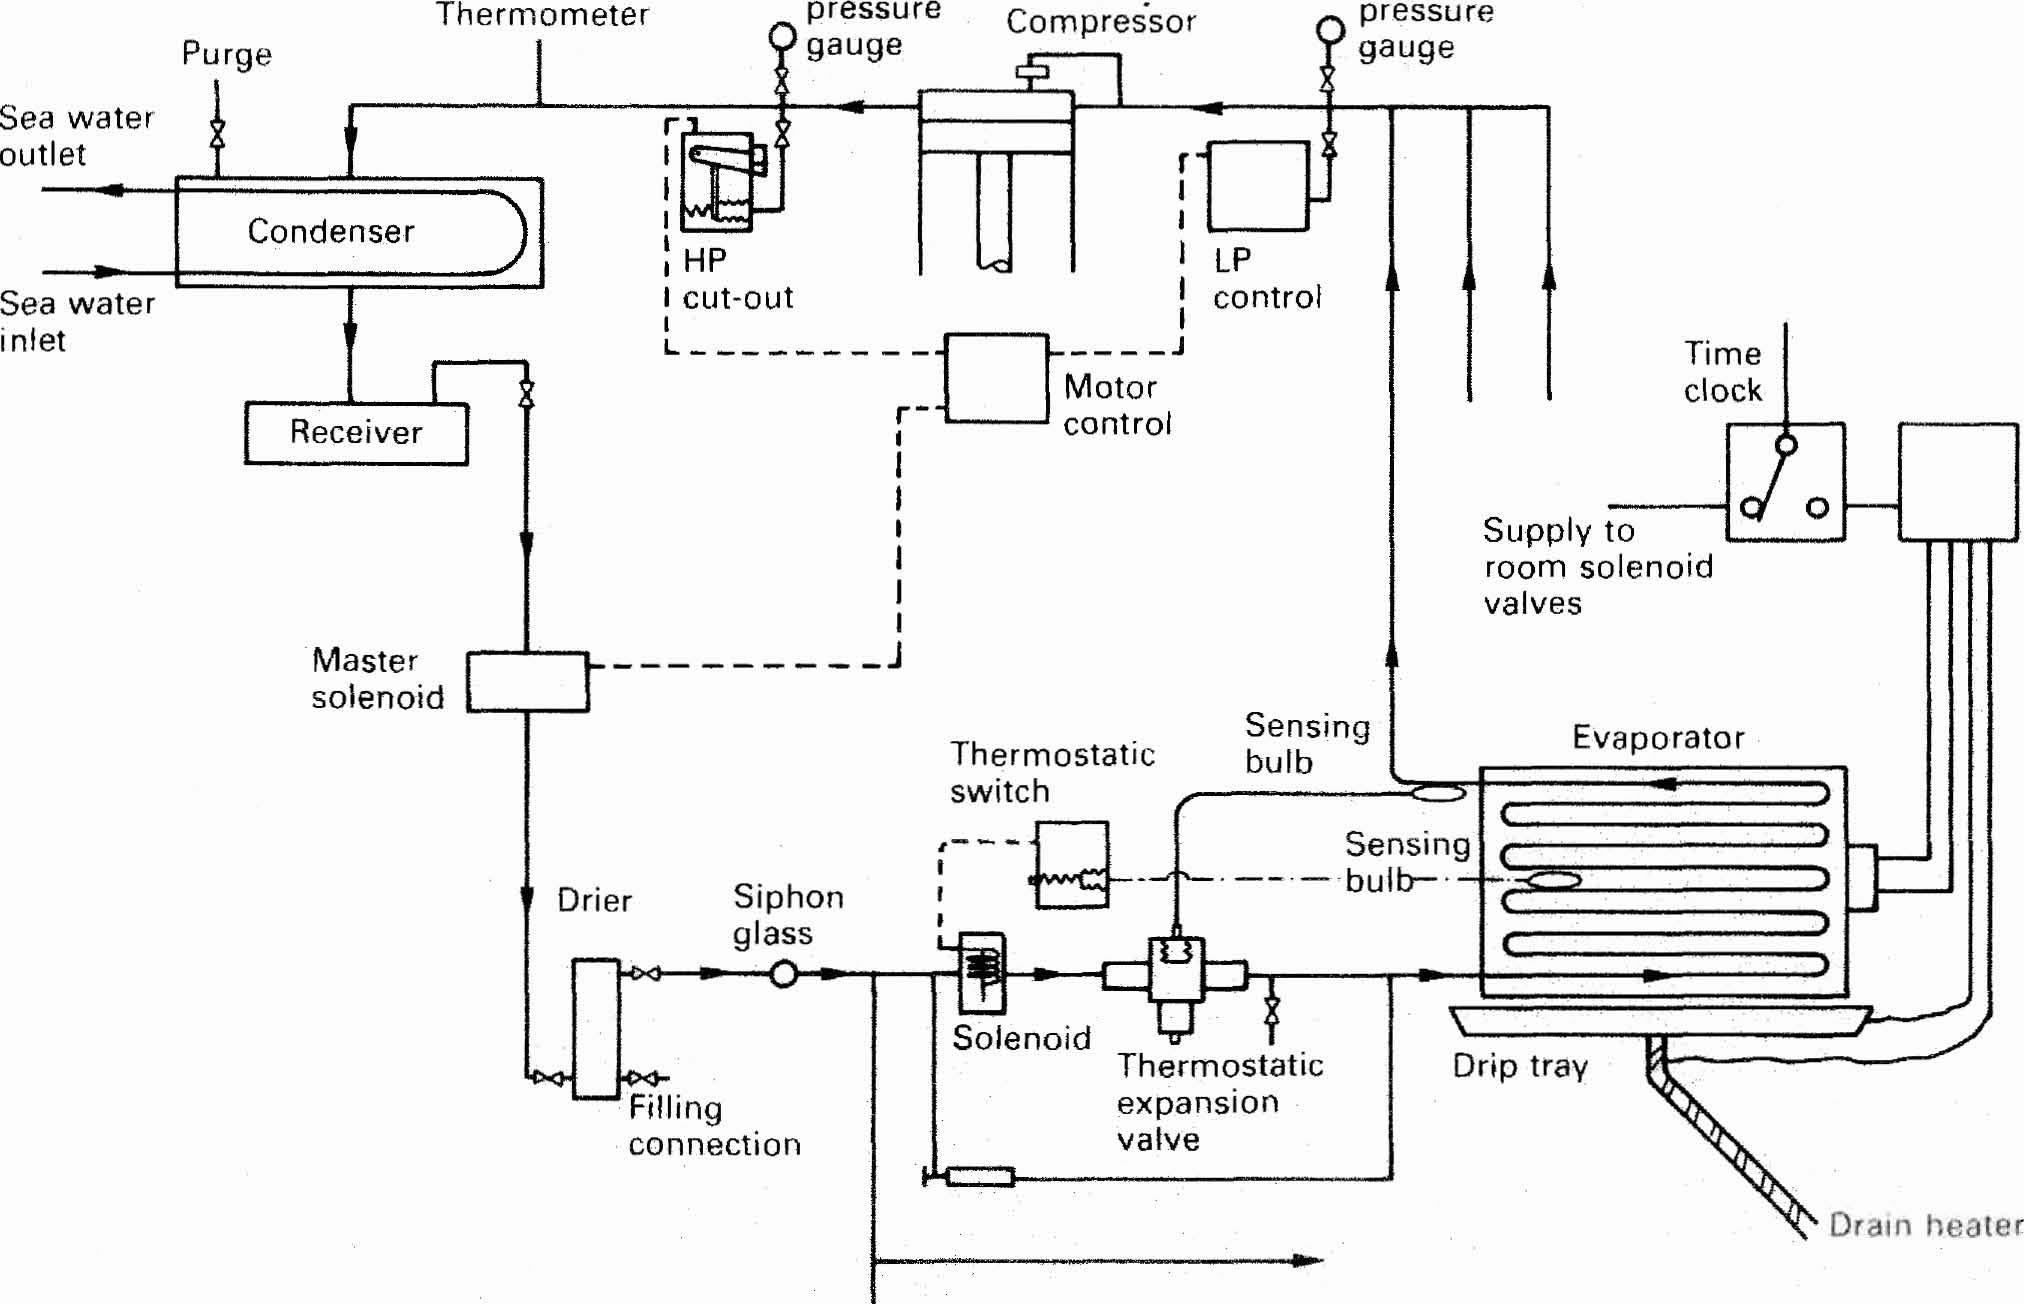 reefer electrical wiring diagrams for air conditioning systems part york chiller control wiring diagram at webbmarketing.co